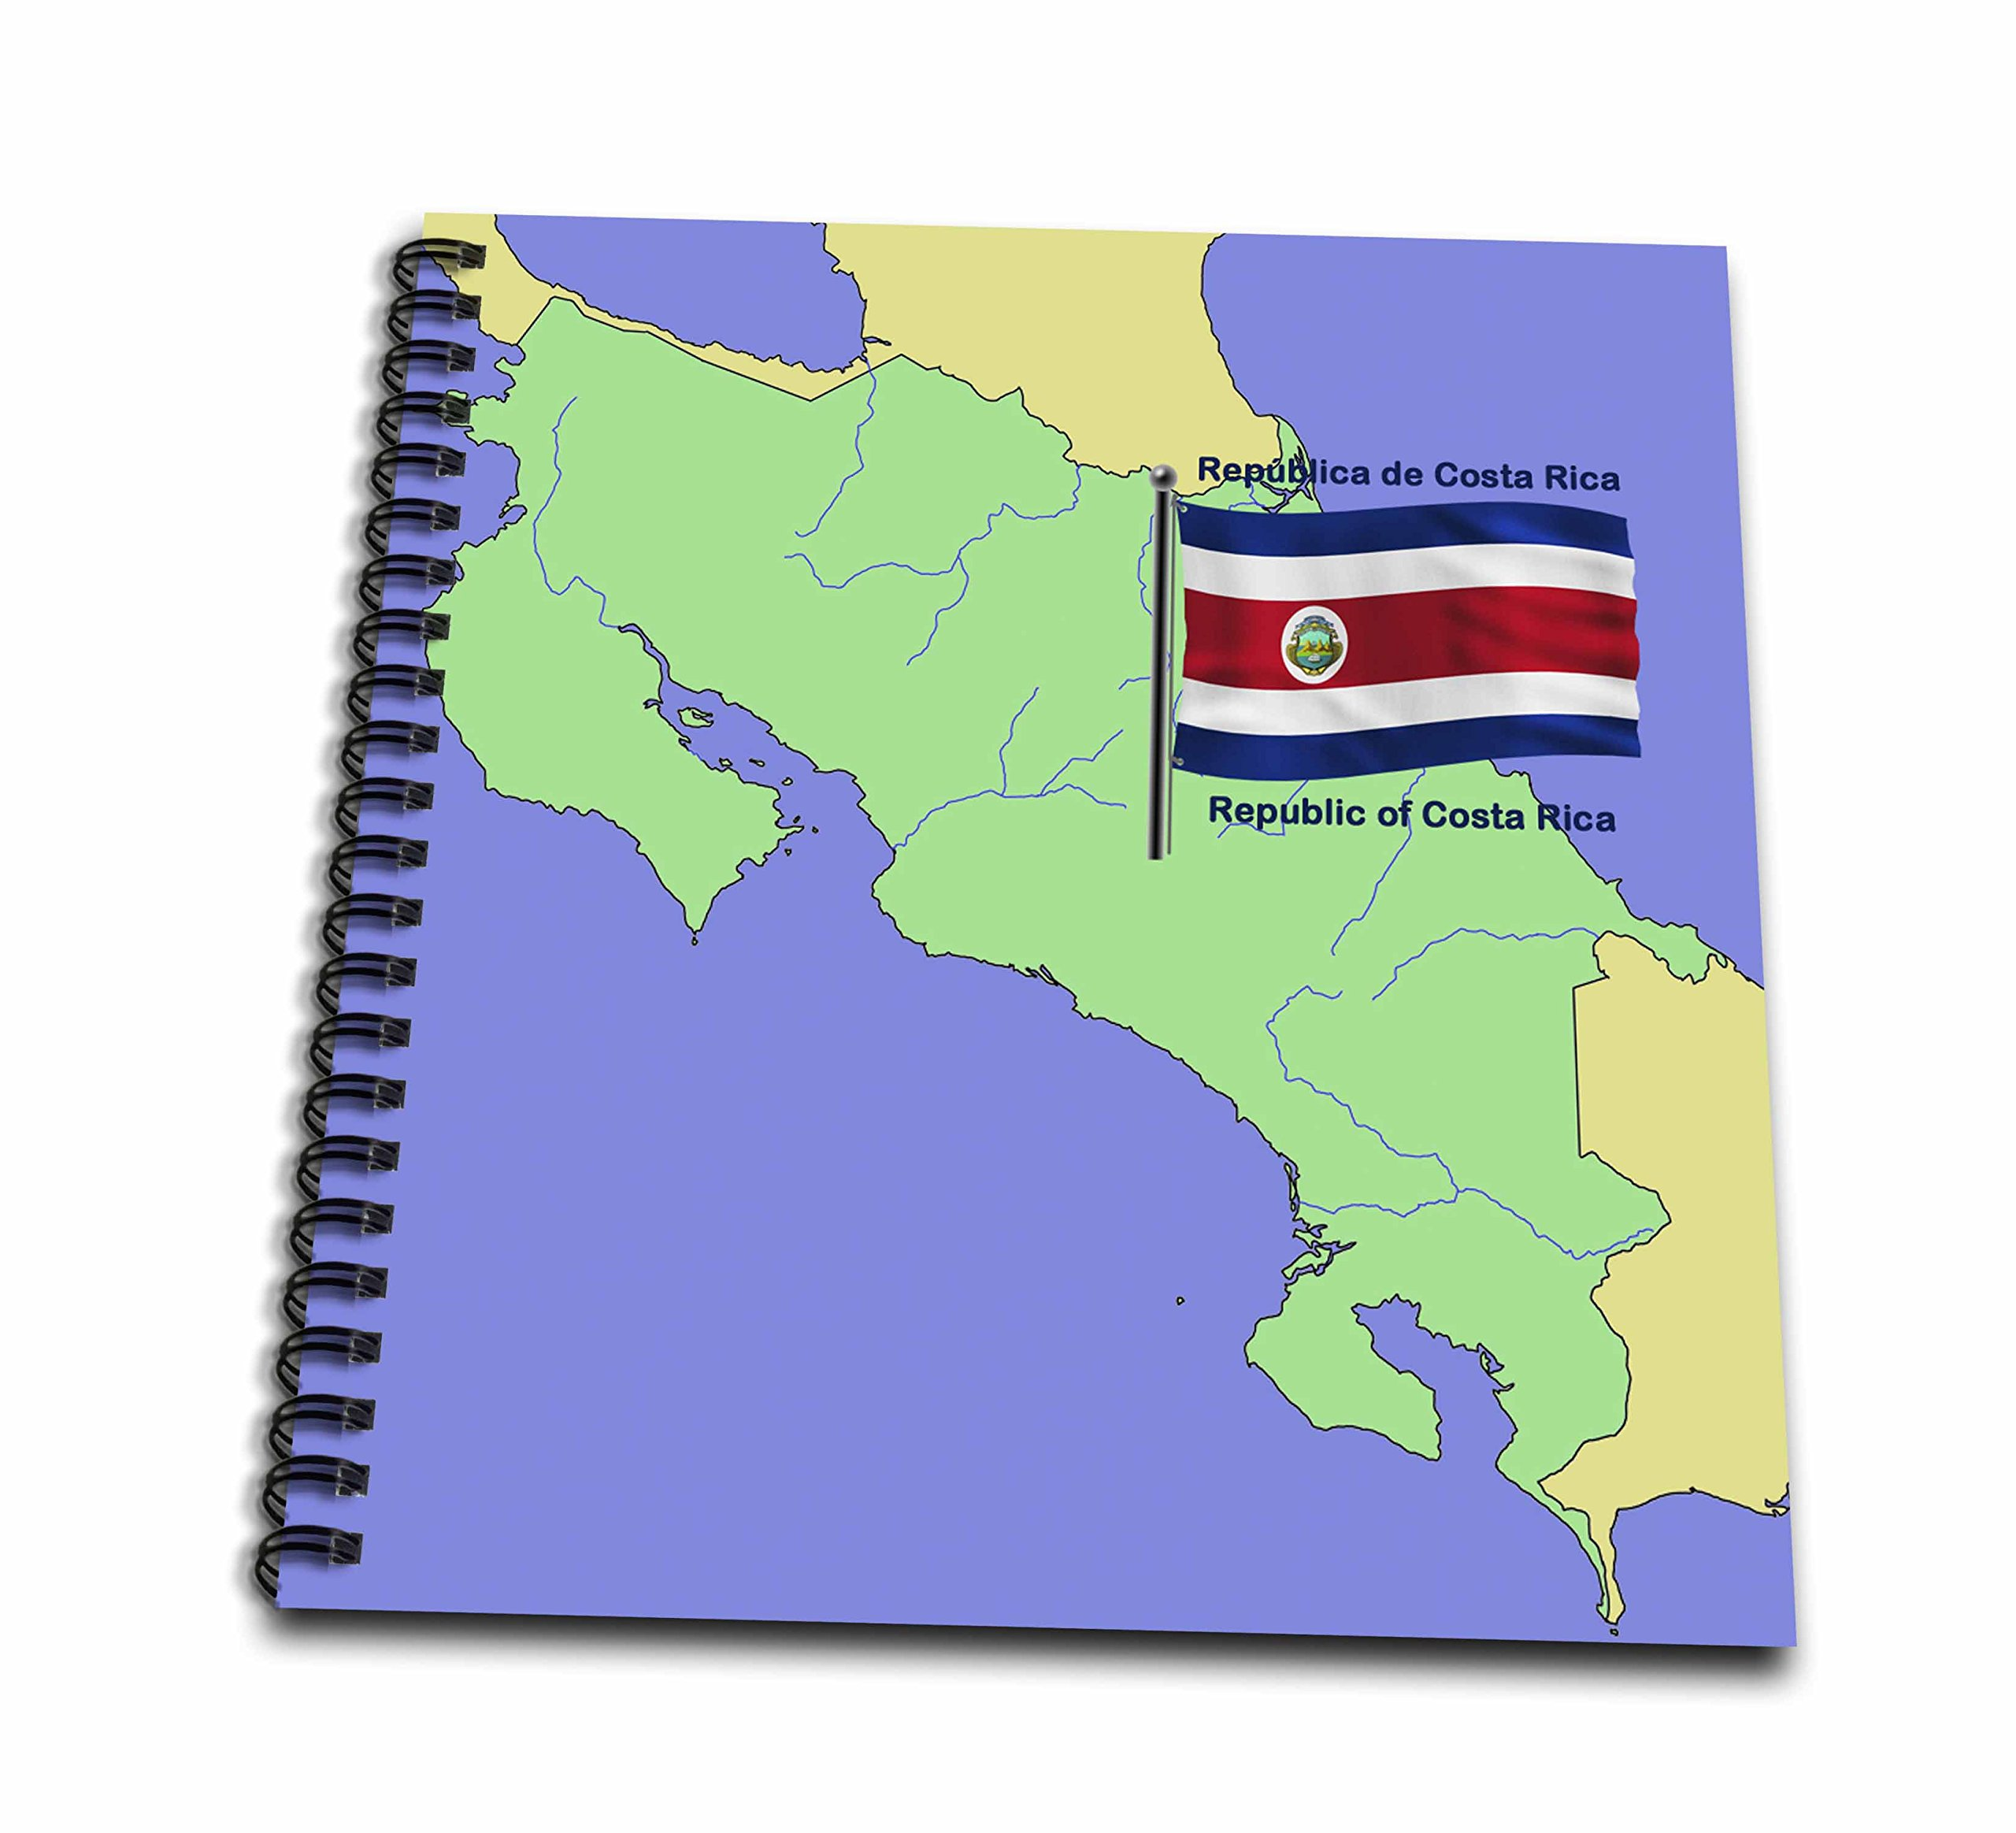 3dRose db_47675_2 Flag and Map of Costa Rica with Republic of Costa Rica Printed in Both English and Spanish Memory Book, 12 by 12-Inch by 3dRose